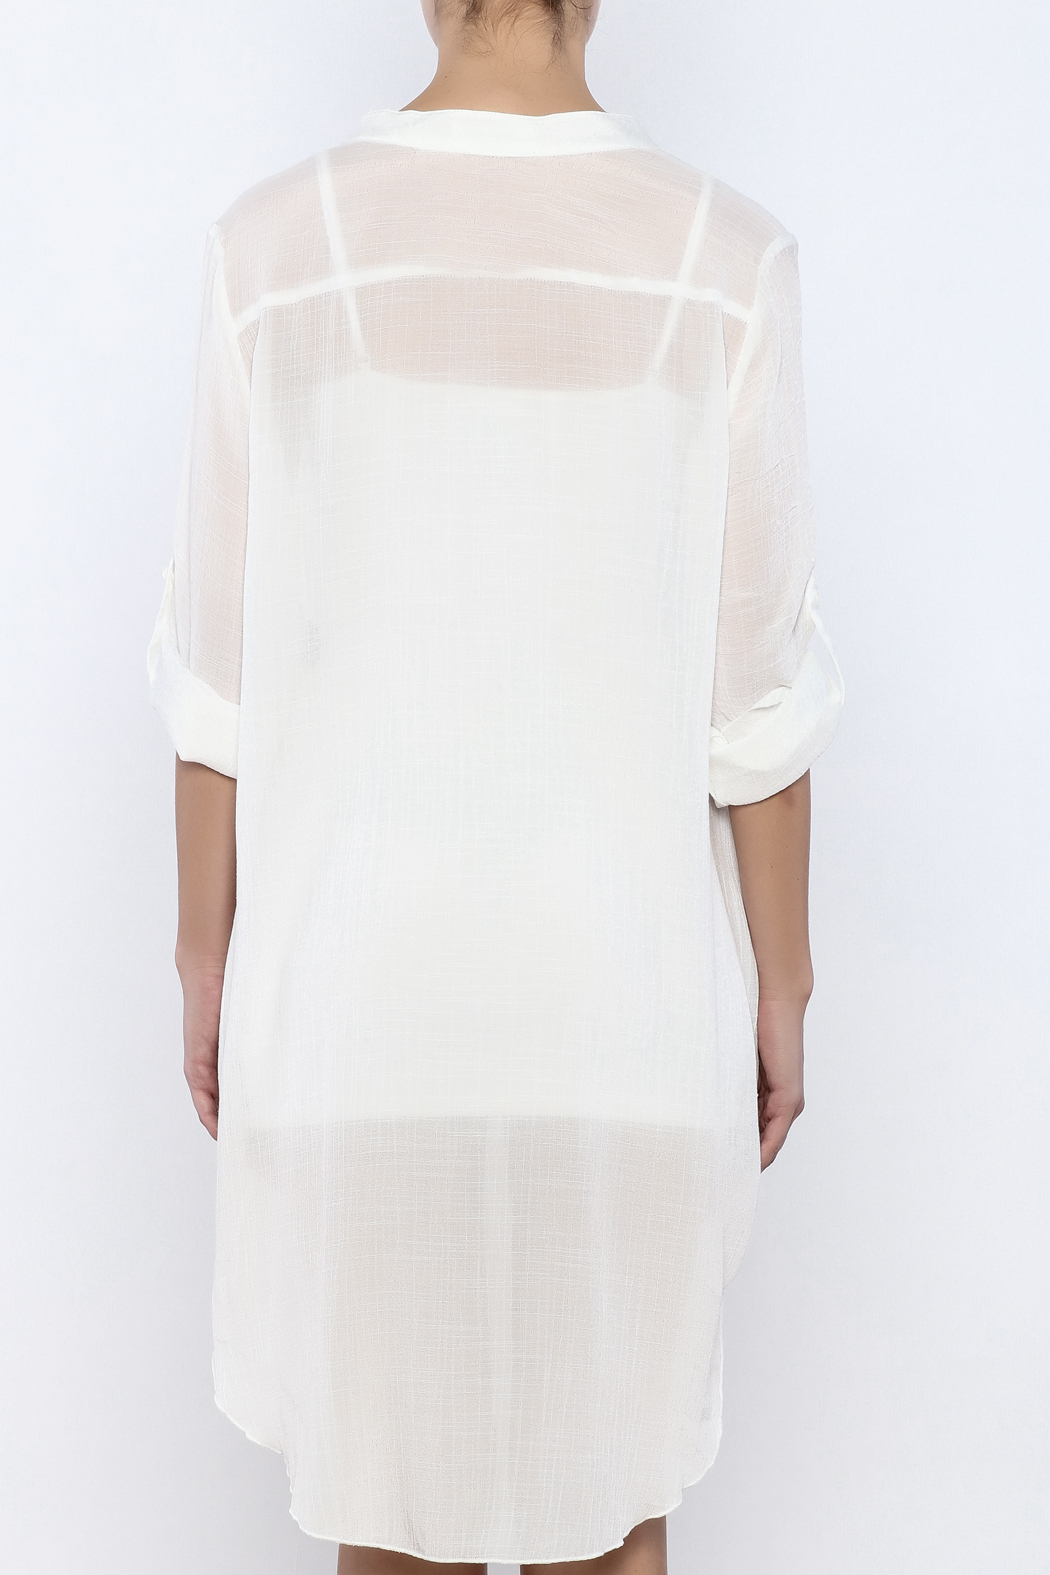 Bacio Off White Dress - Back Cropped Image